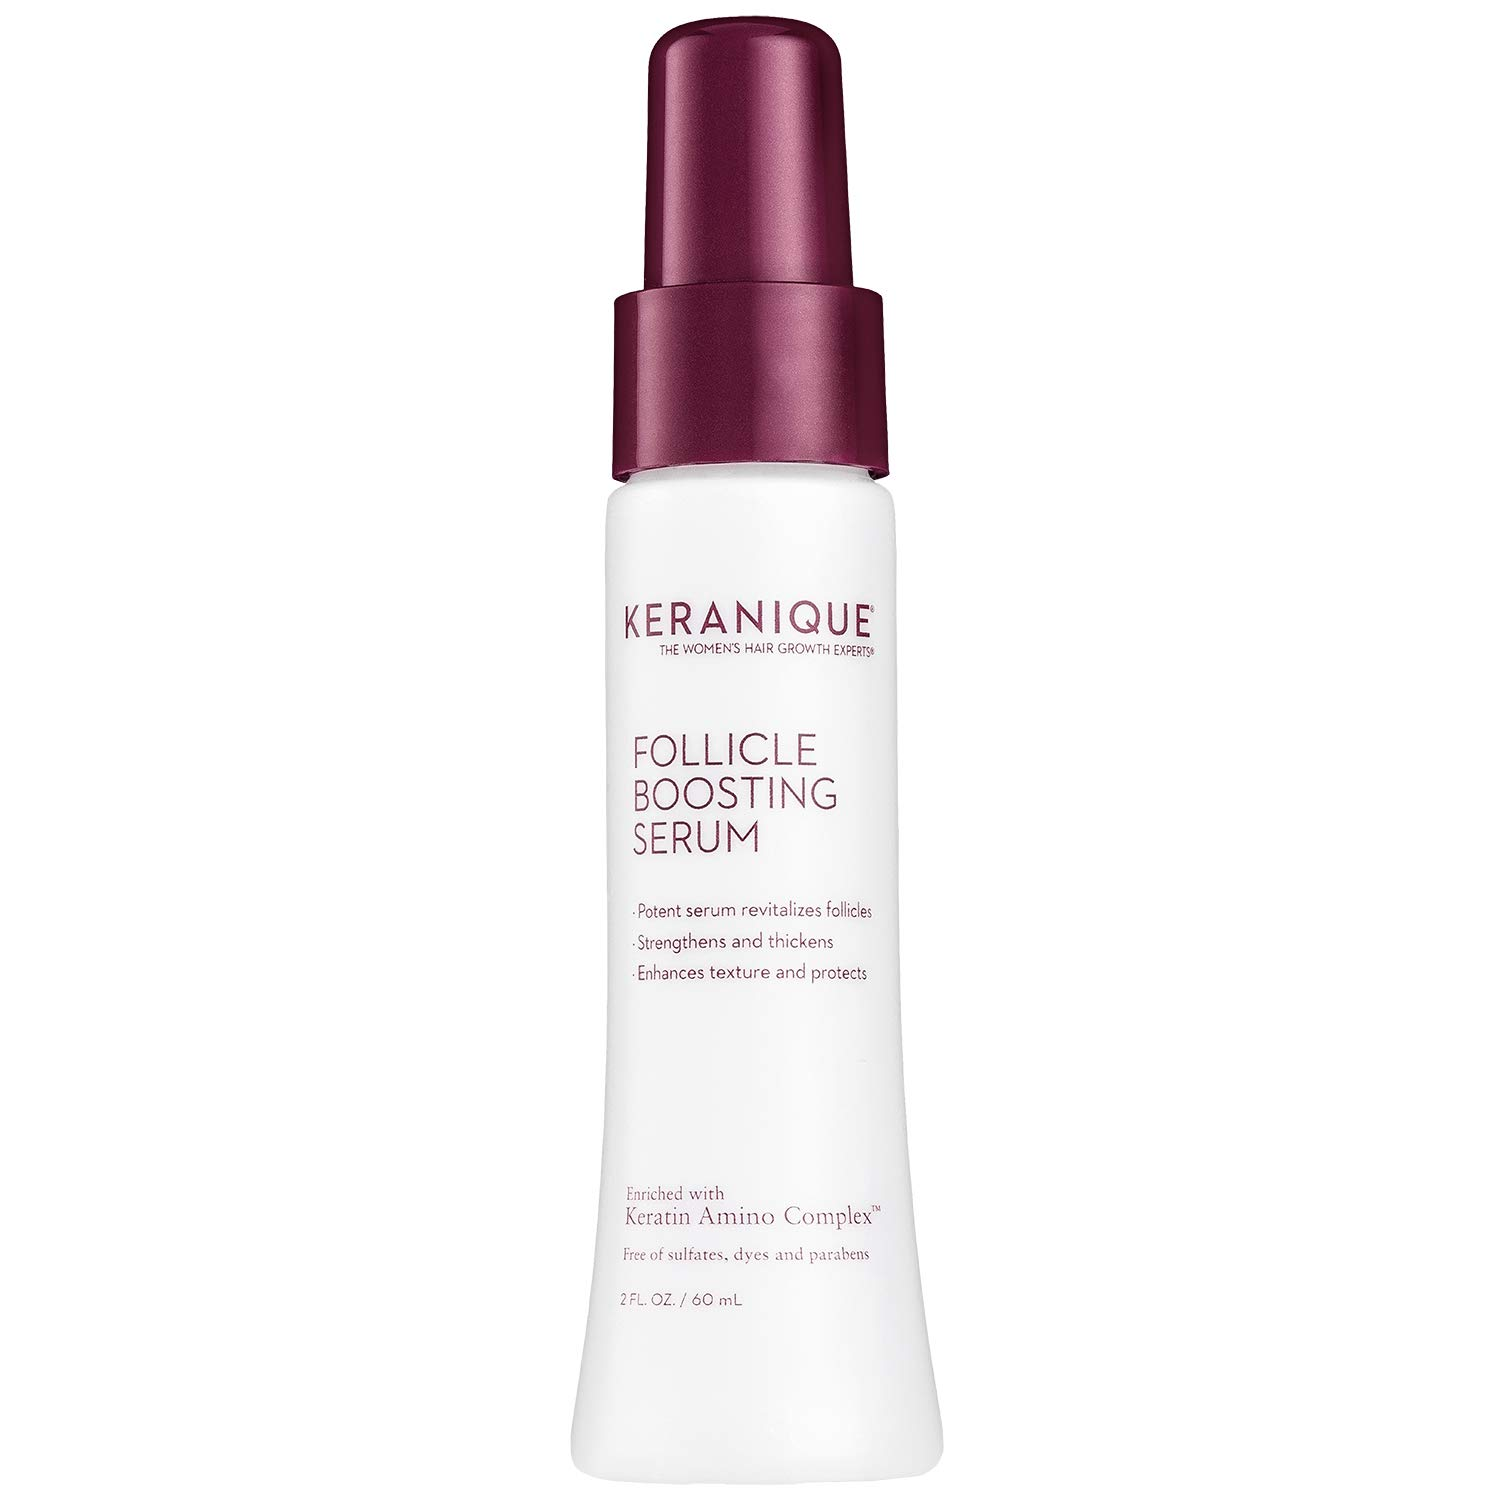 Keranique Follicle Boosting Serum, 2 Fl Oz - Keratin Amino Complex, Sulfate, Dyes And Parabens Free | Stimulates, Nourishes and Supports Scalp Hair Follicle Health | Repairs Existing Damage Hair by Keranique